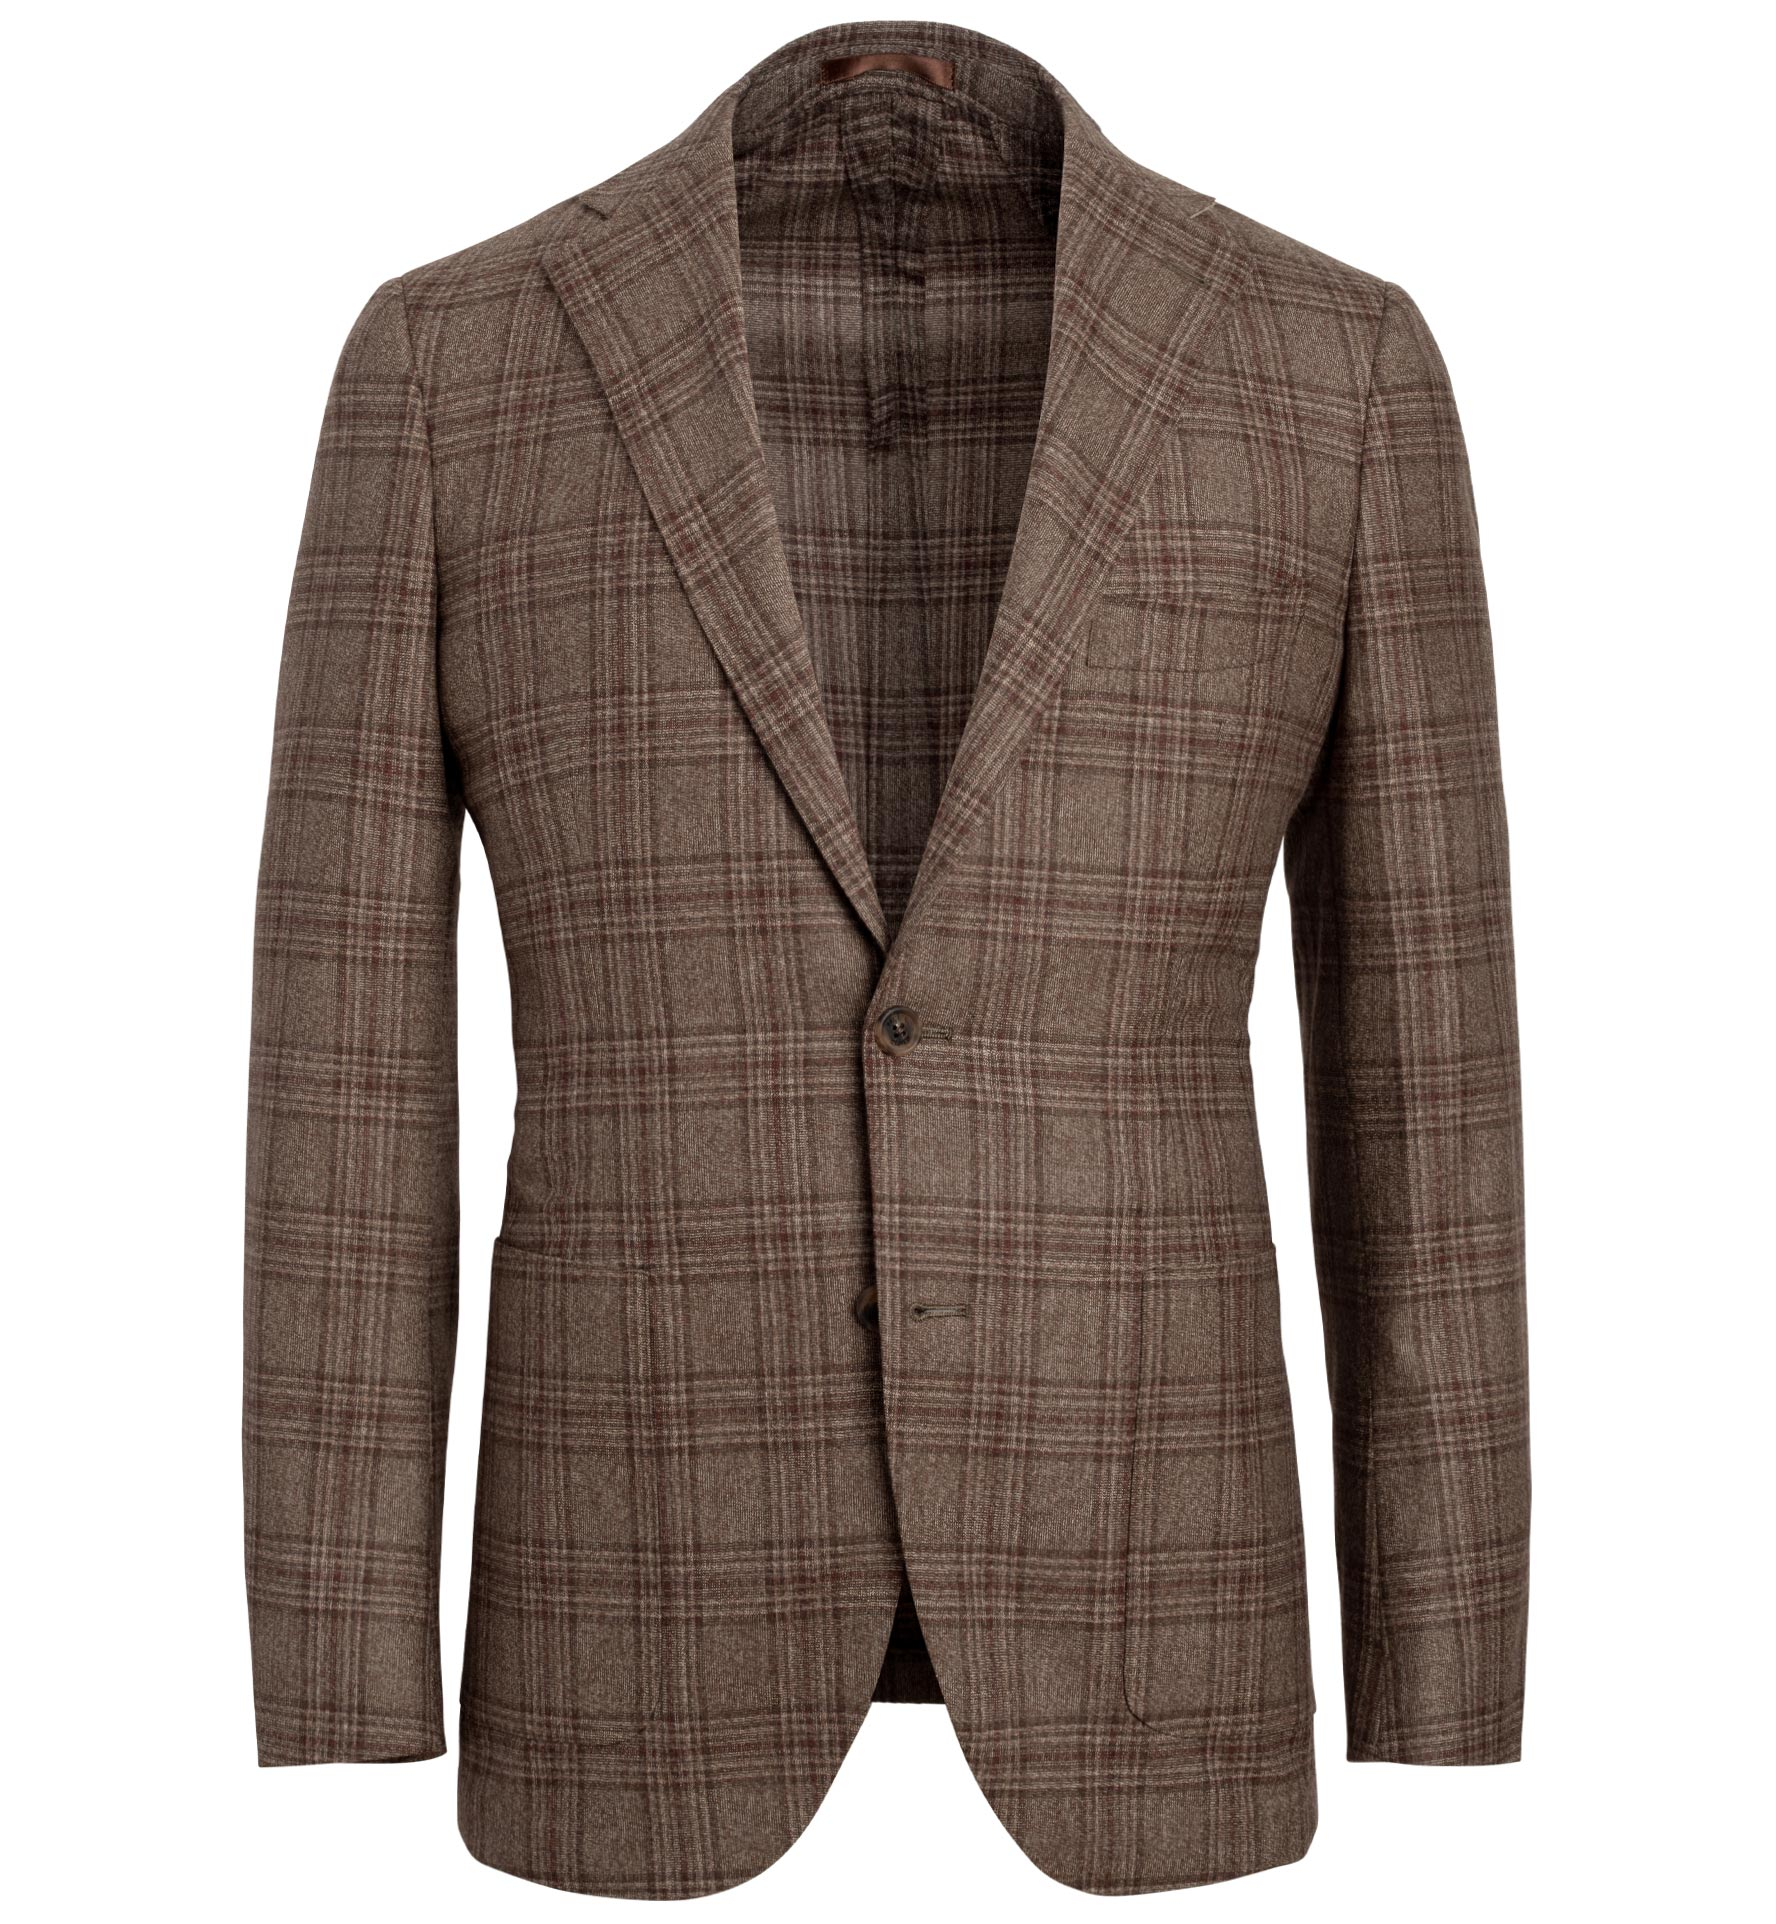 Zoom Image of Bedford Mocha Plaid Lightweight Wool Jacket